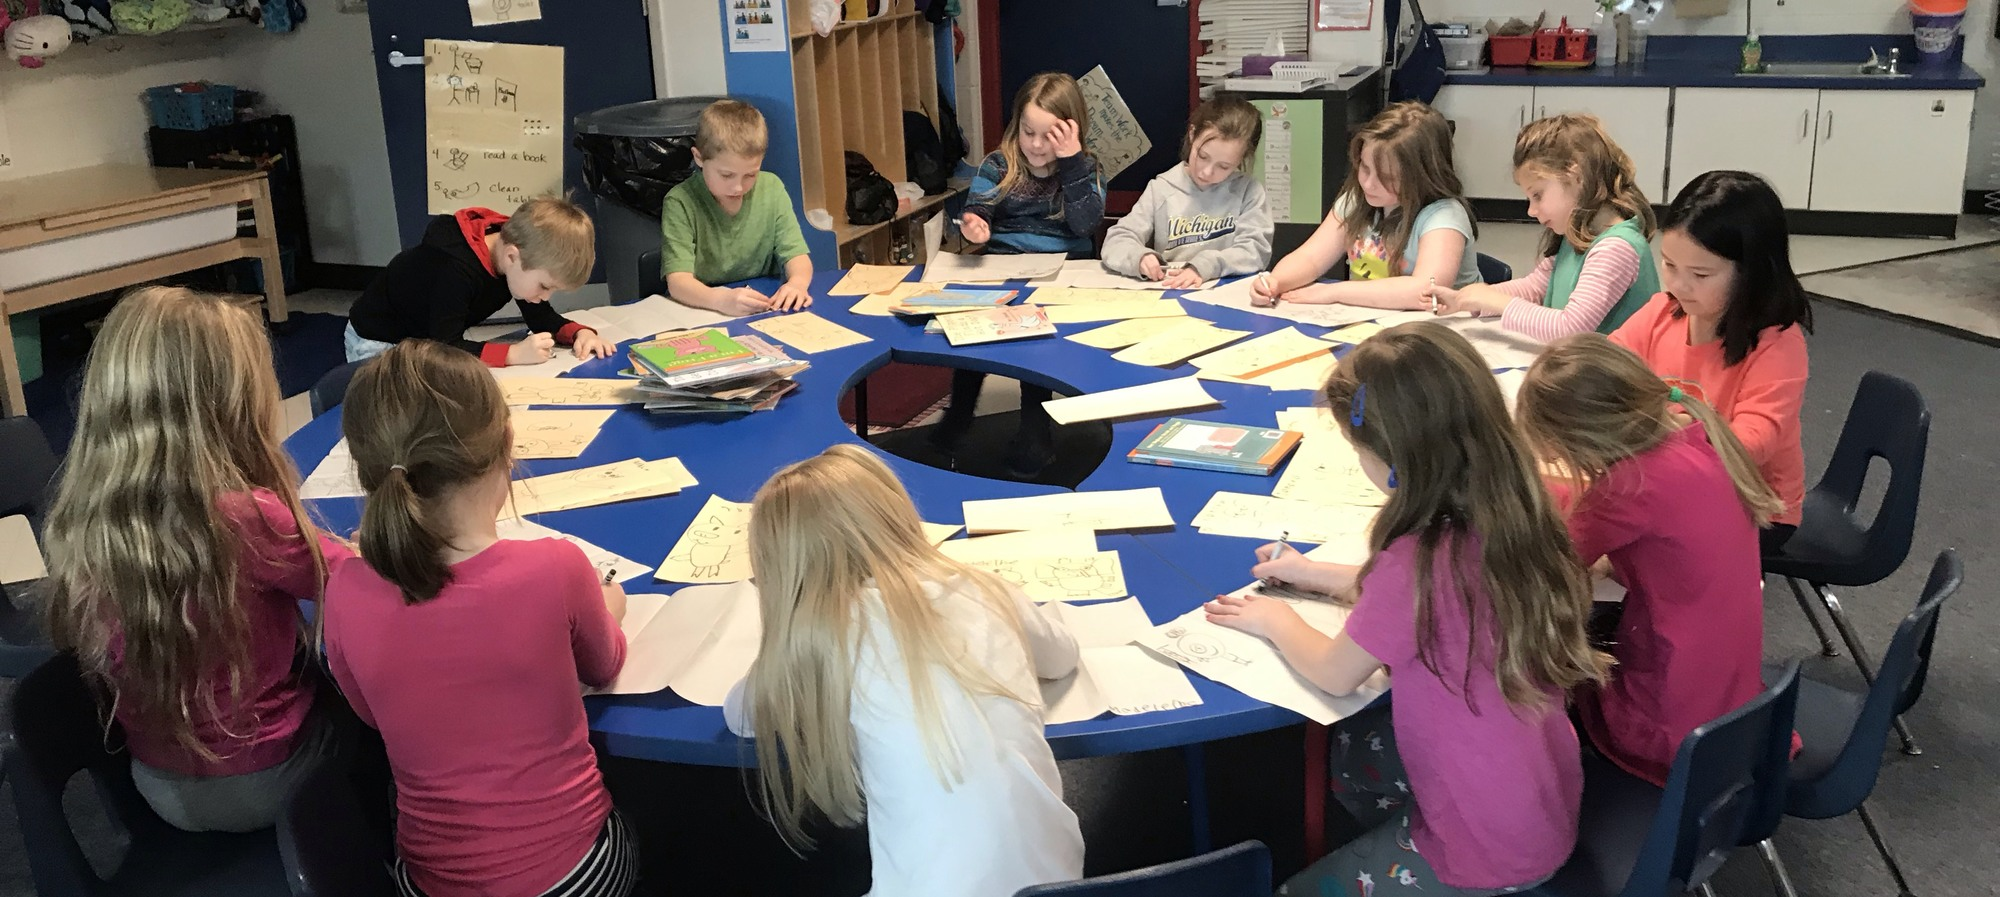 Students in after school enrichment class